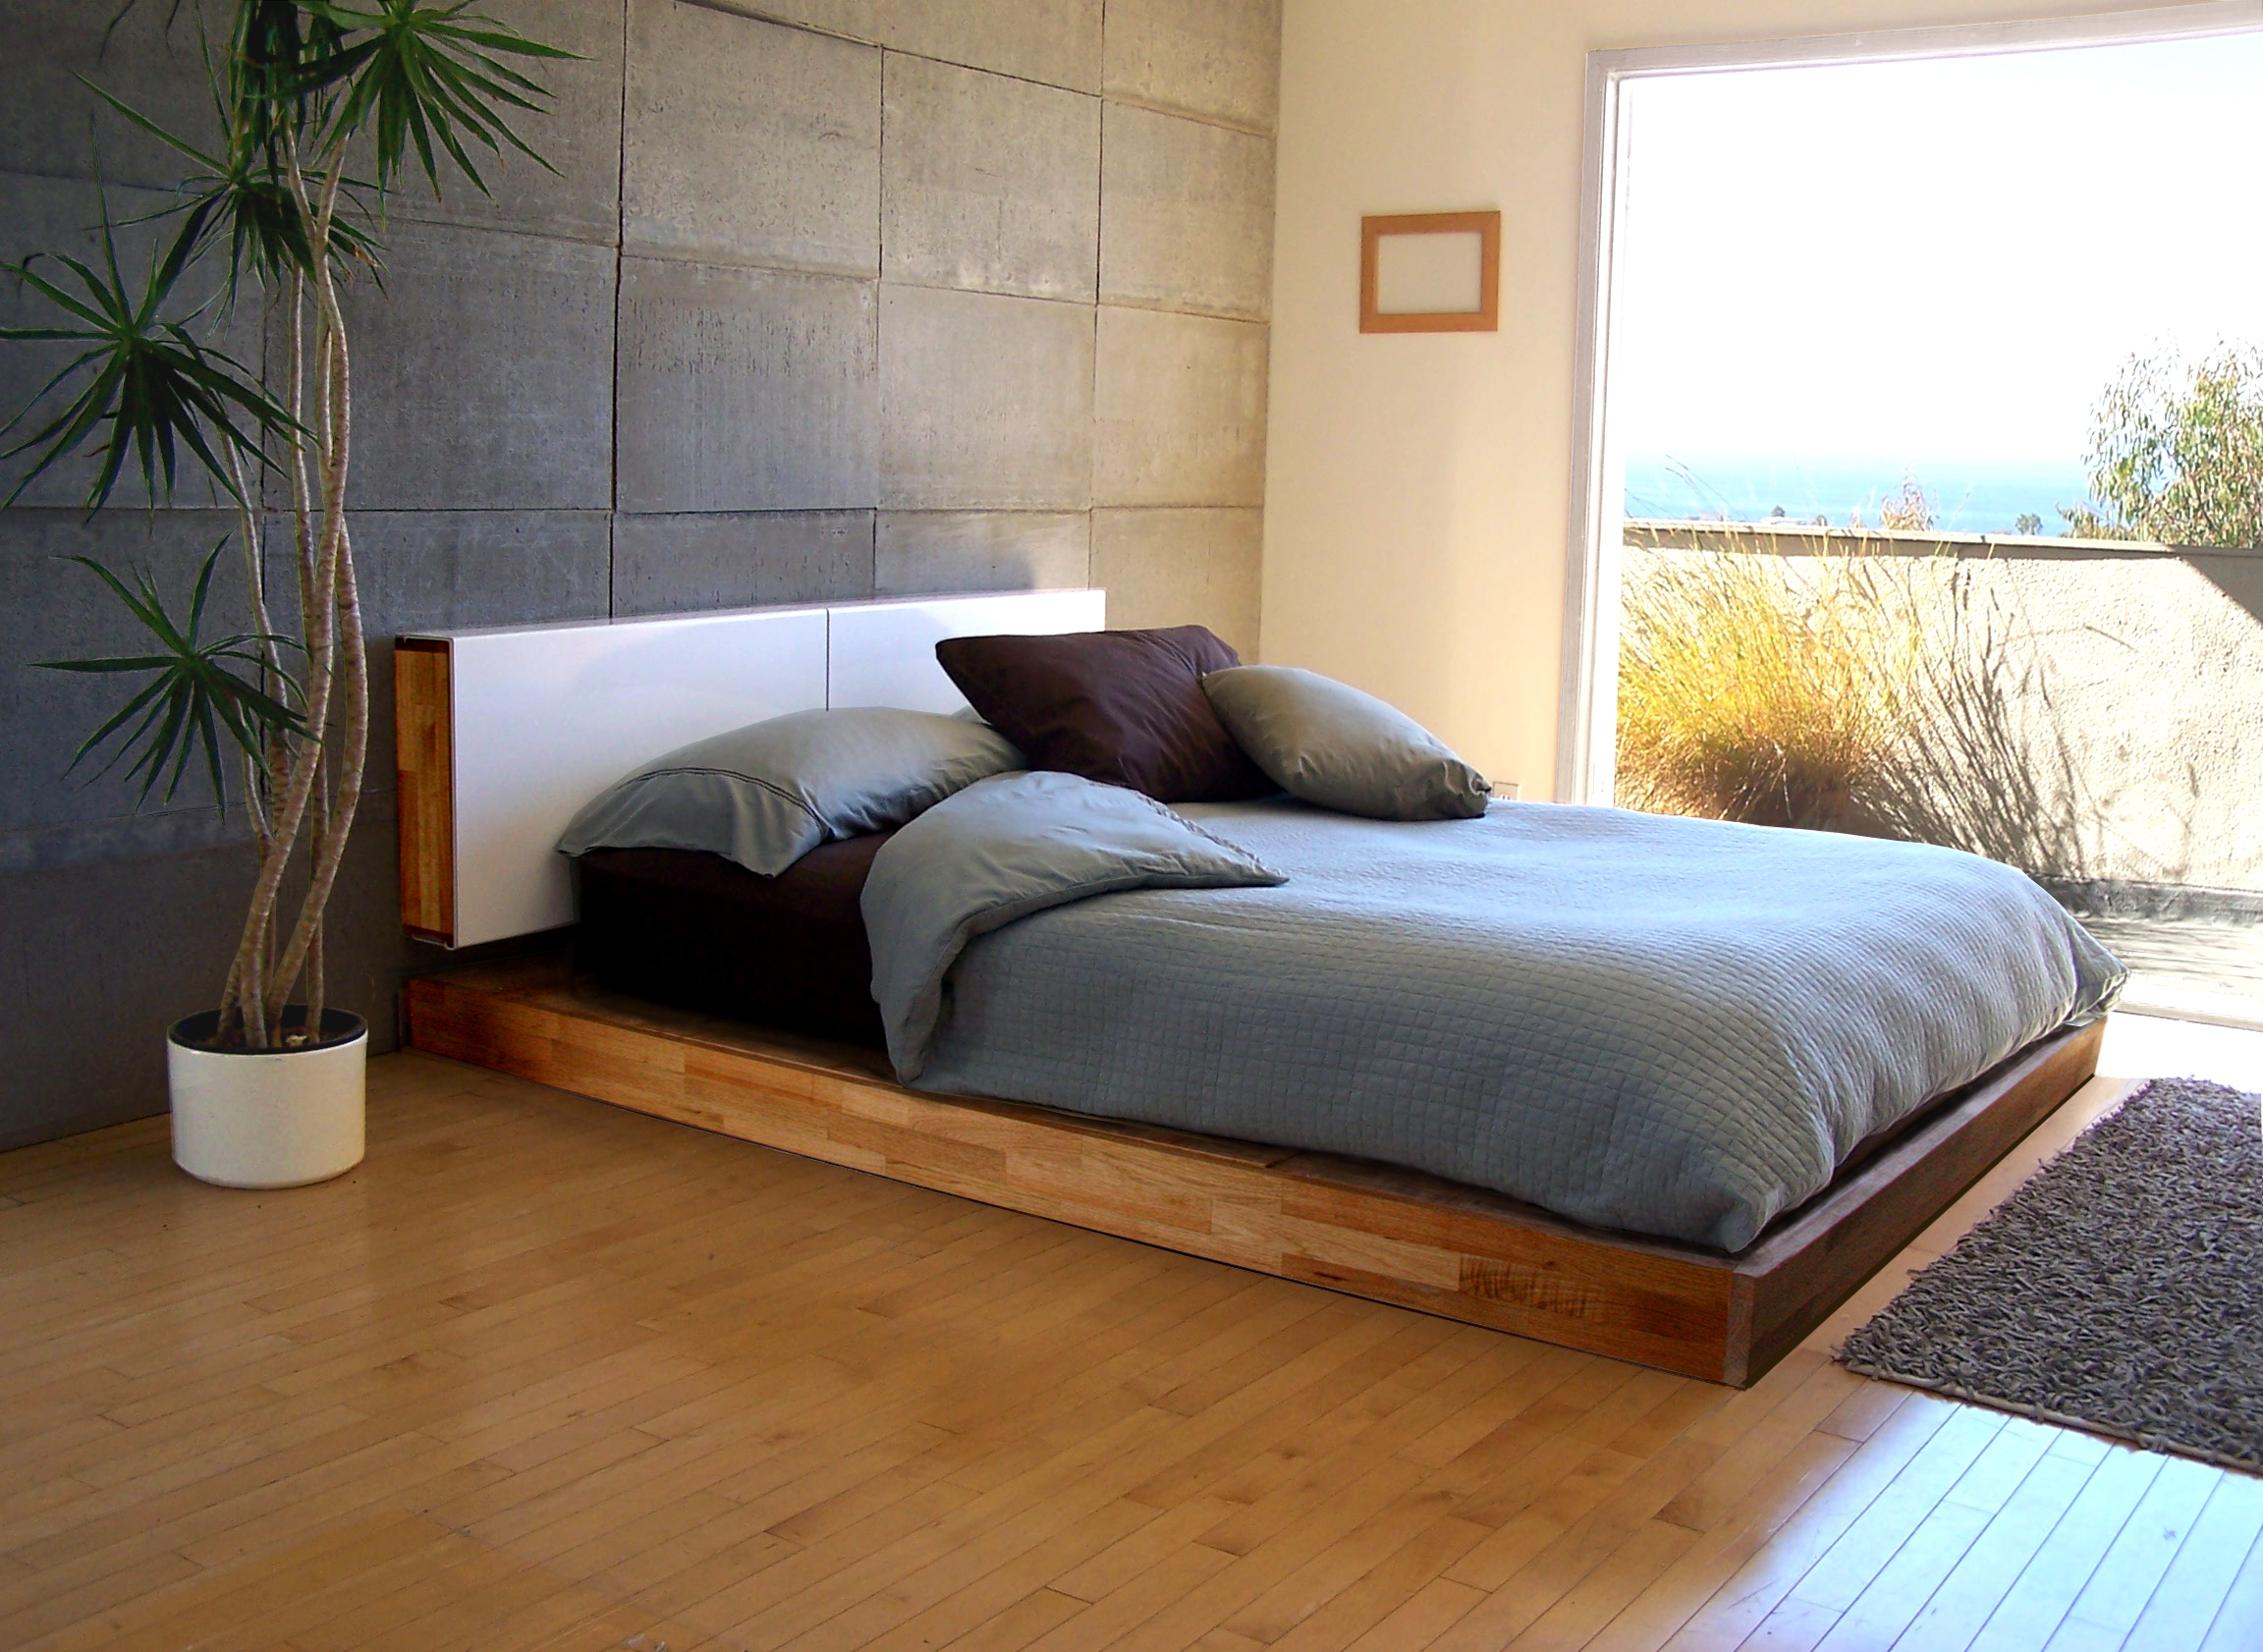 On The Floor Bed Framebedroom beds design ideas old traditional bed design white